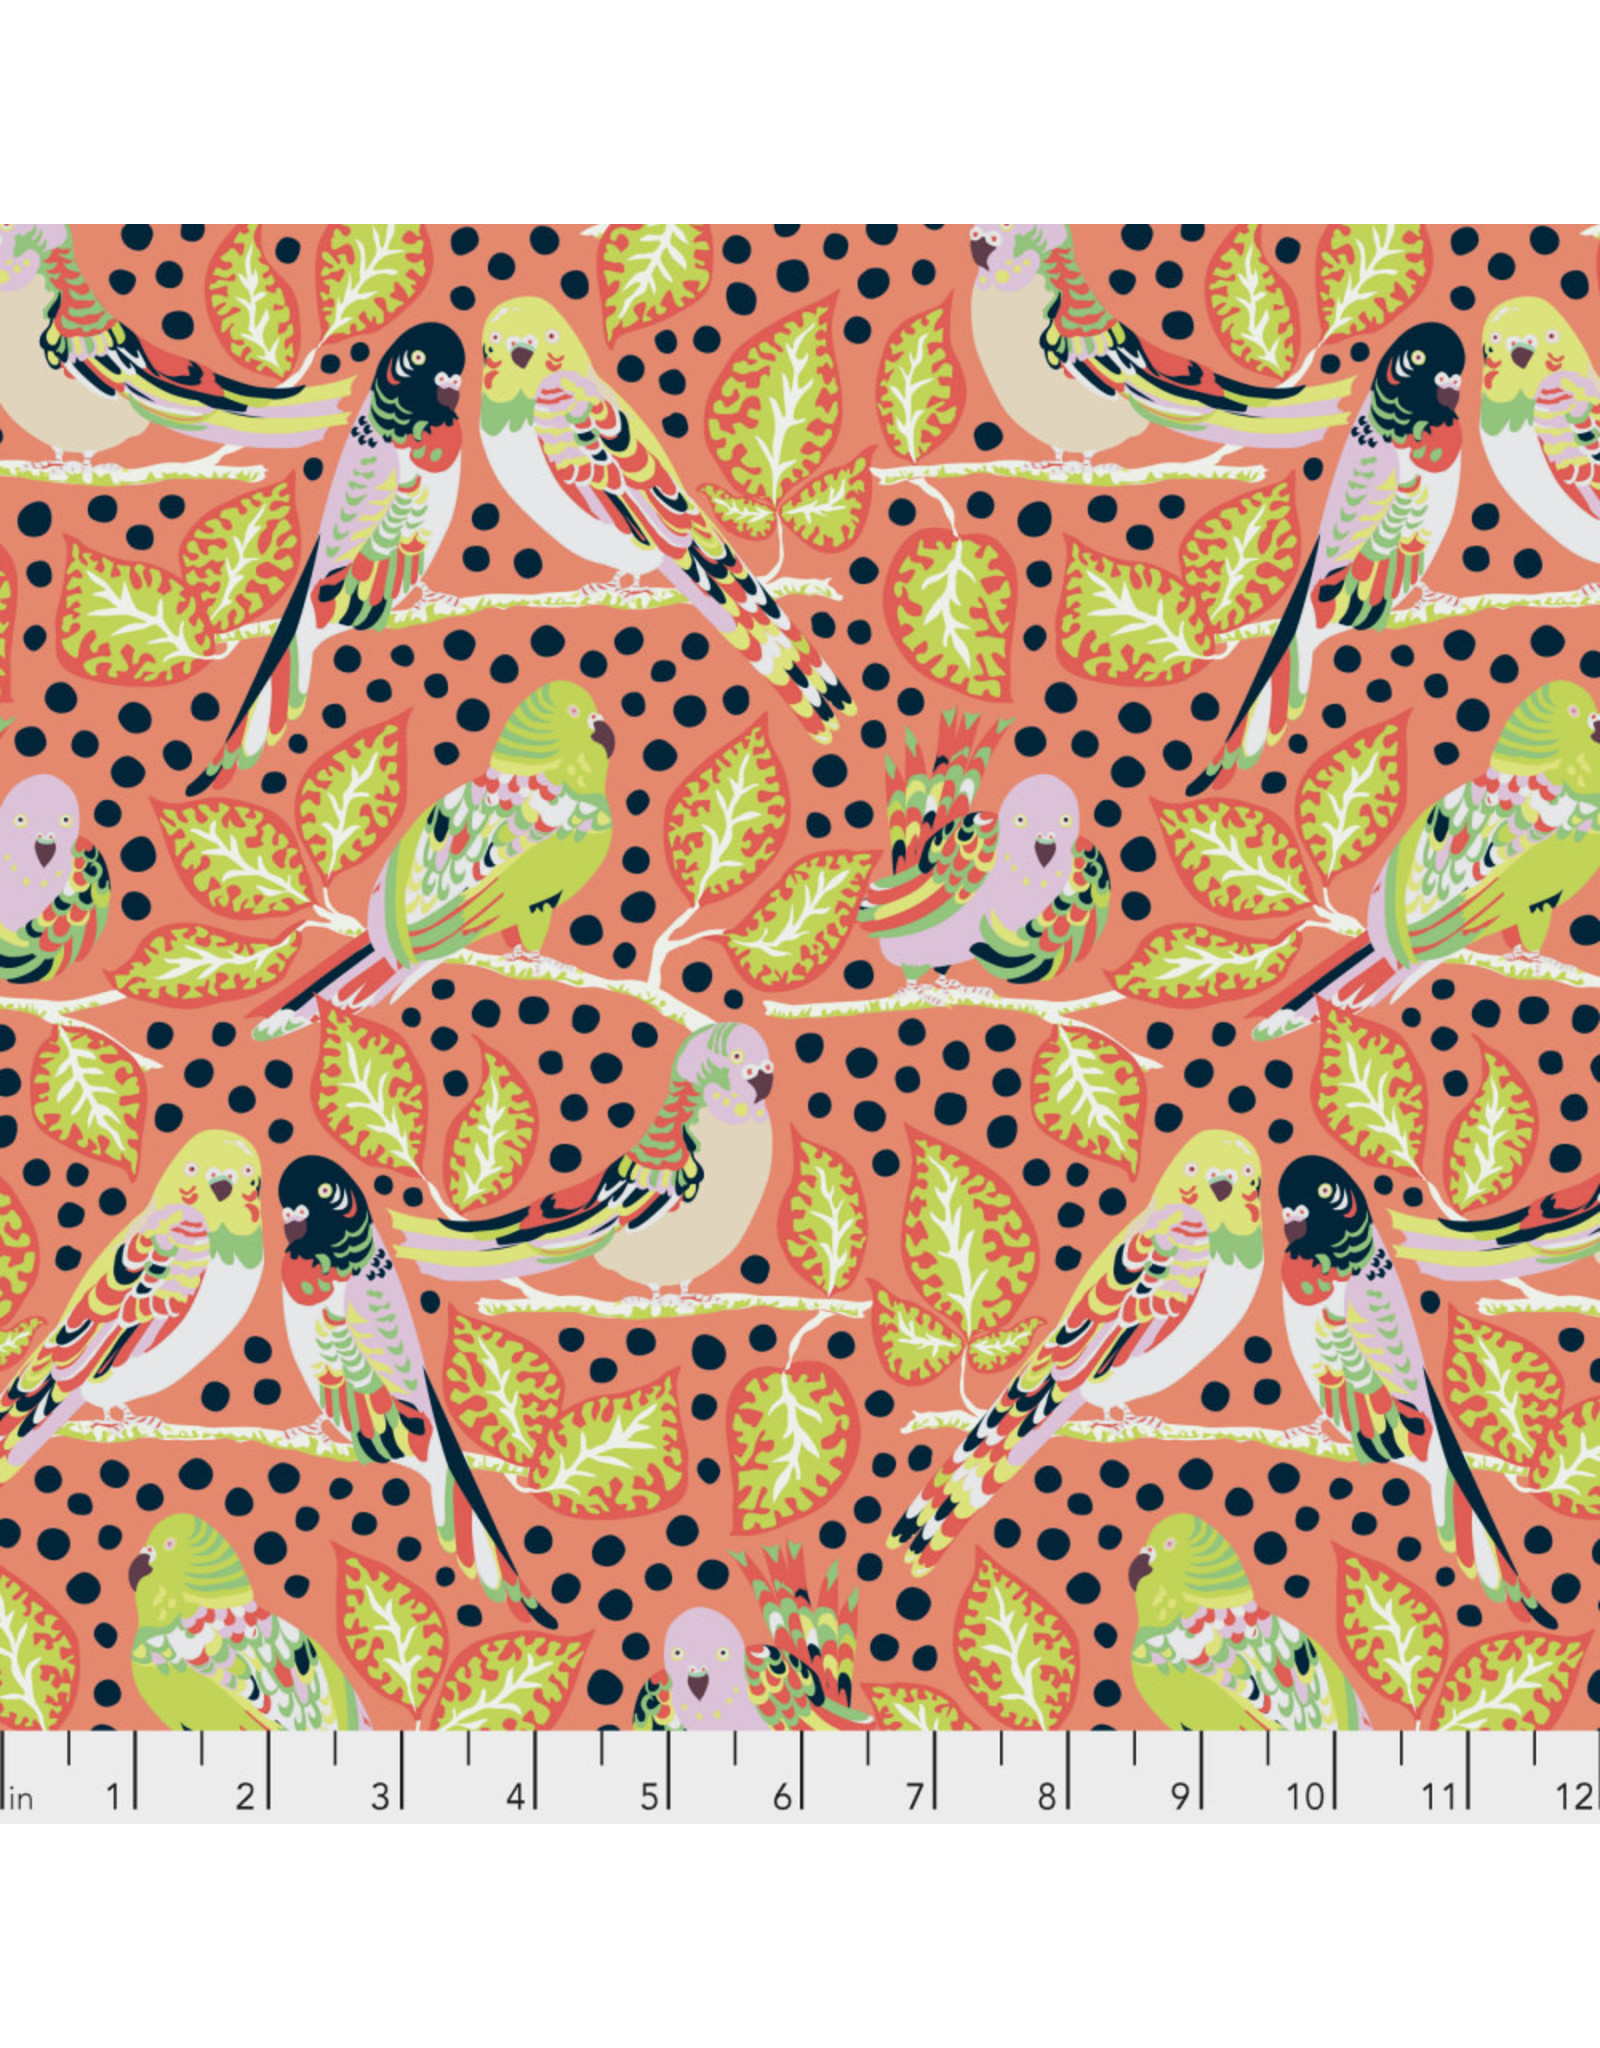 Kathy Doughty Earth Made Paradise, Budgie Boogie in Coral, Fabric Half-Yards